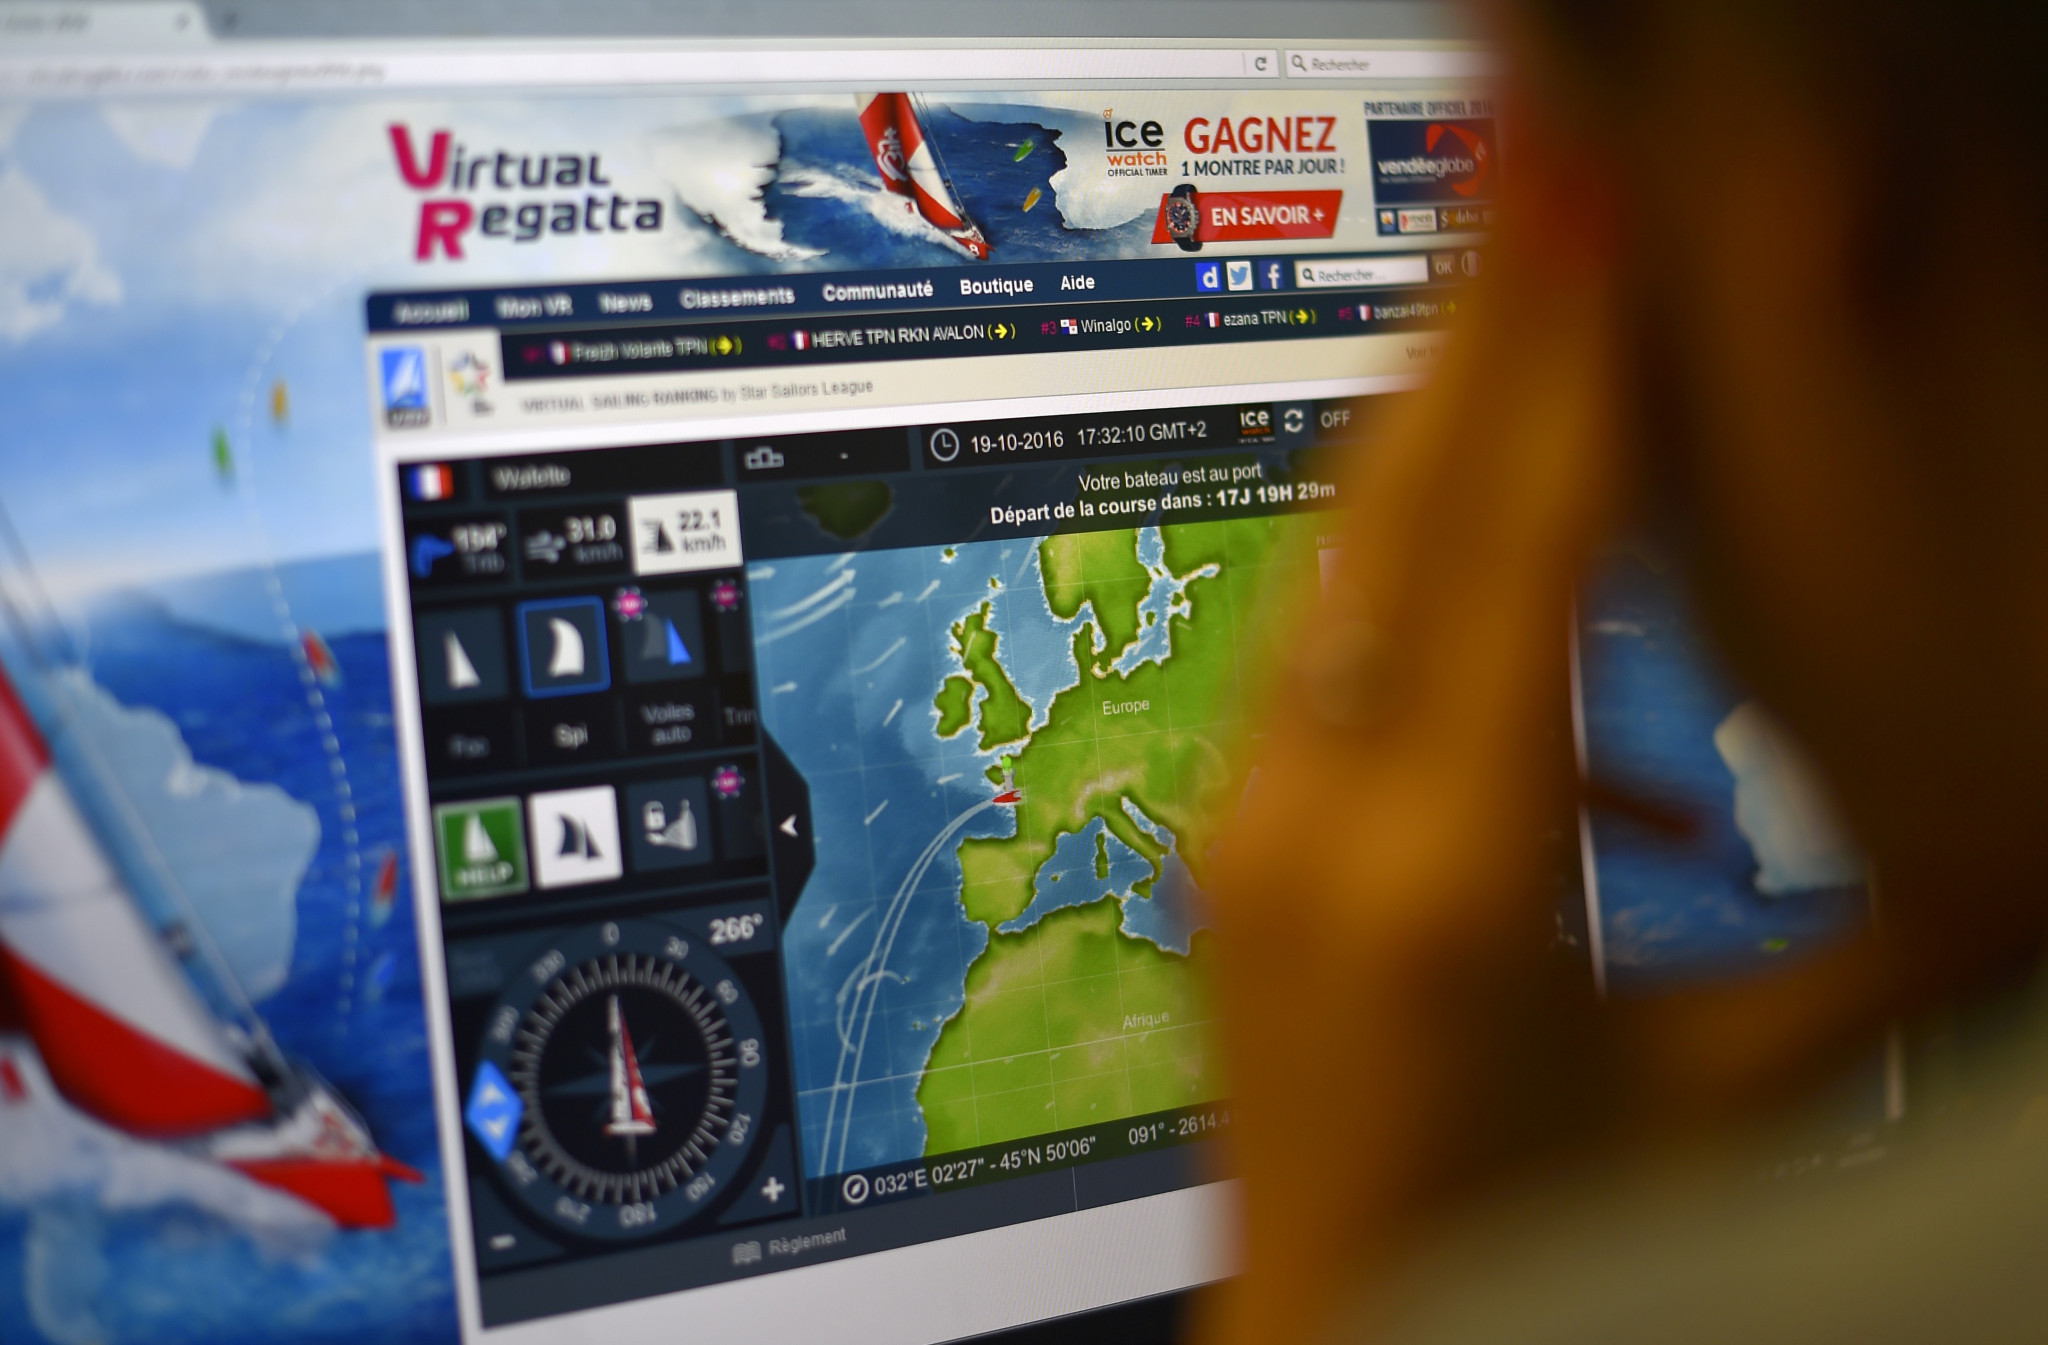 Competition will take place on the Virtual Regatta platform ©Getty Images